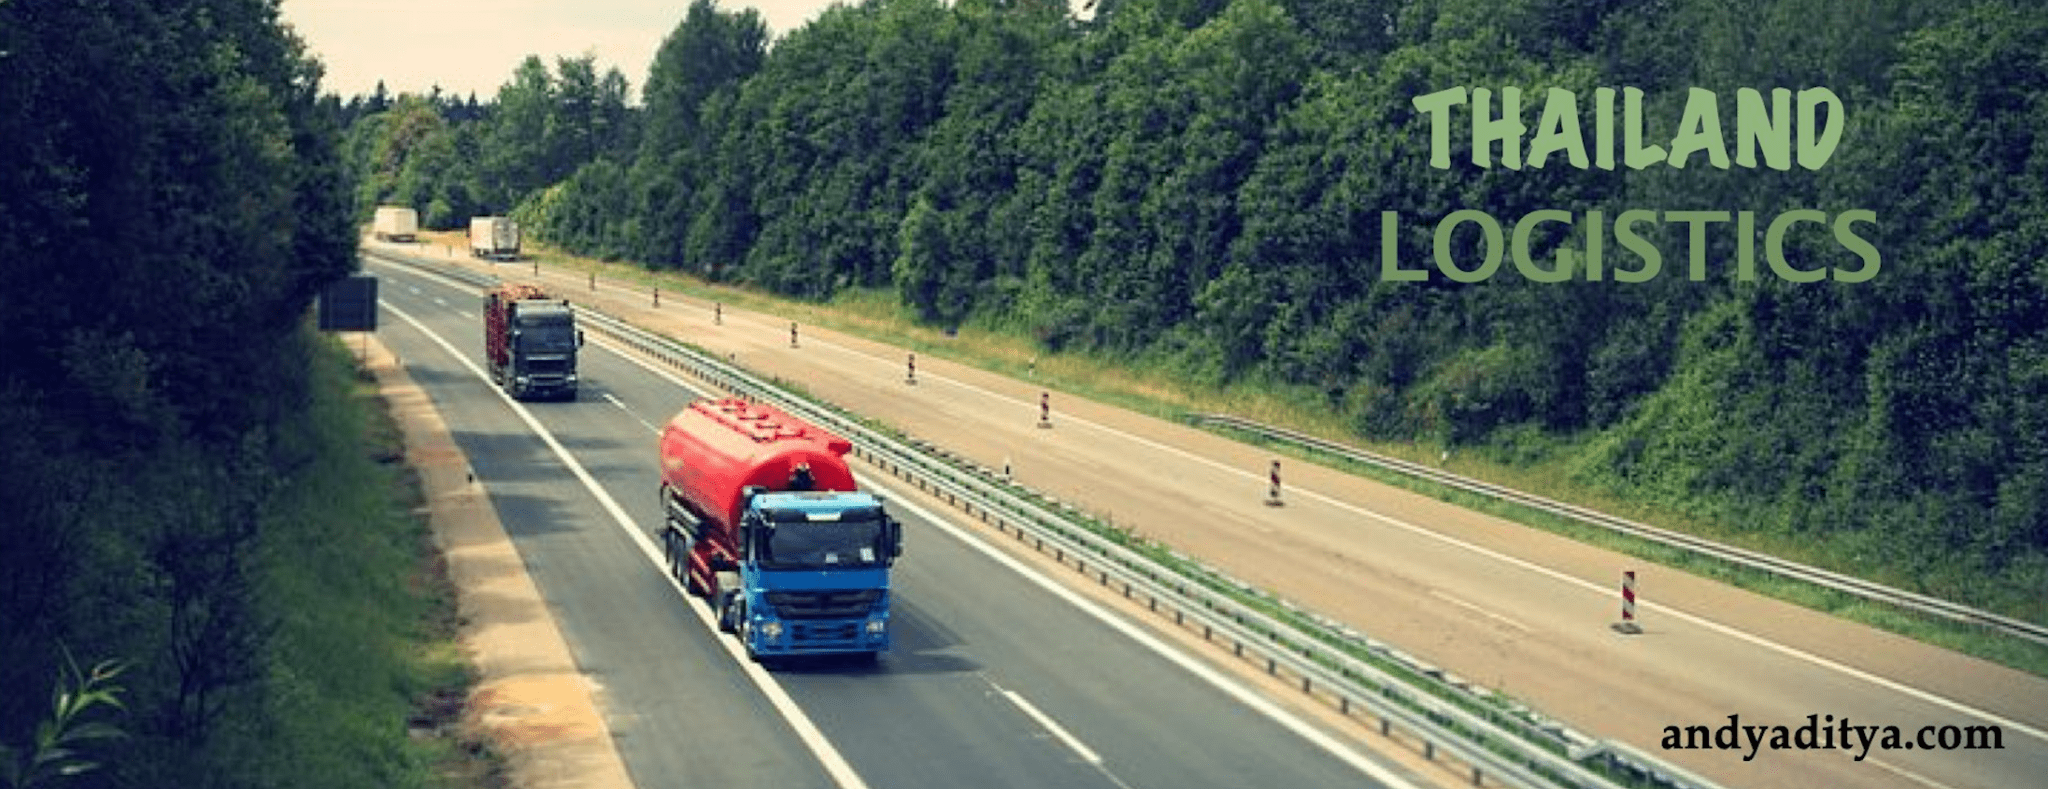 Scope For Start-Up In Logistics Sectors In Thailand